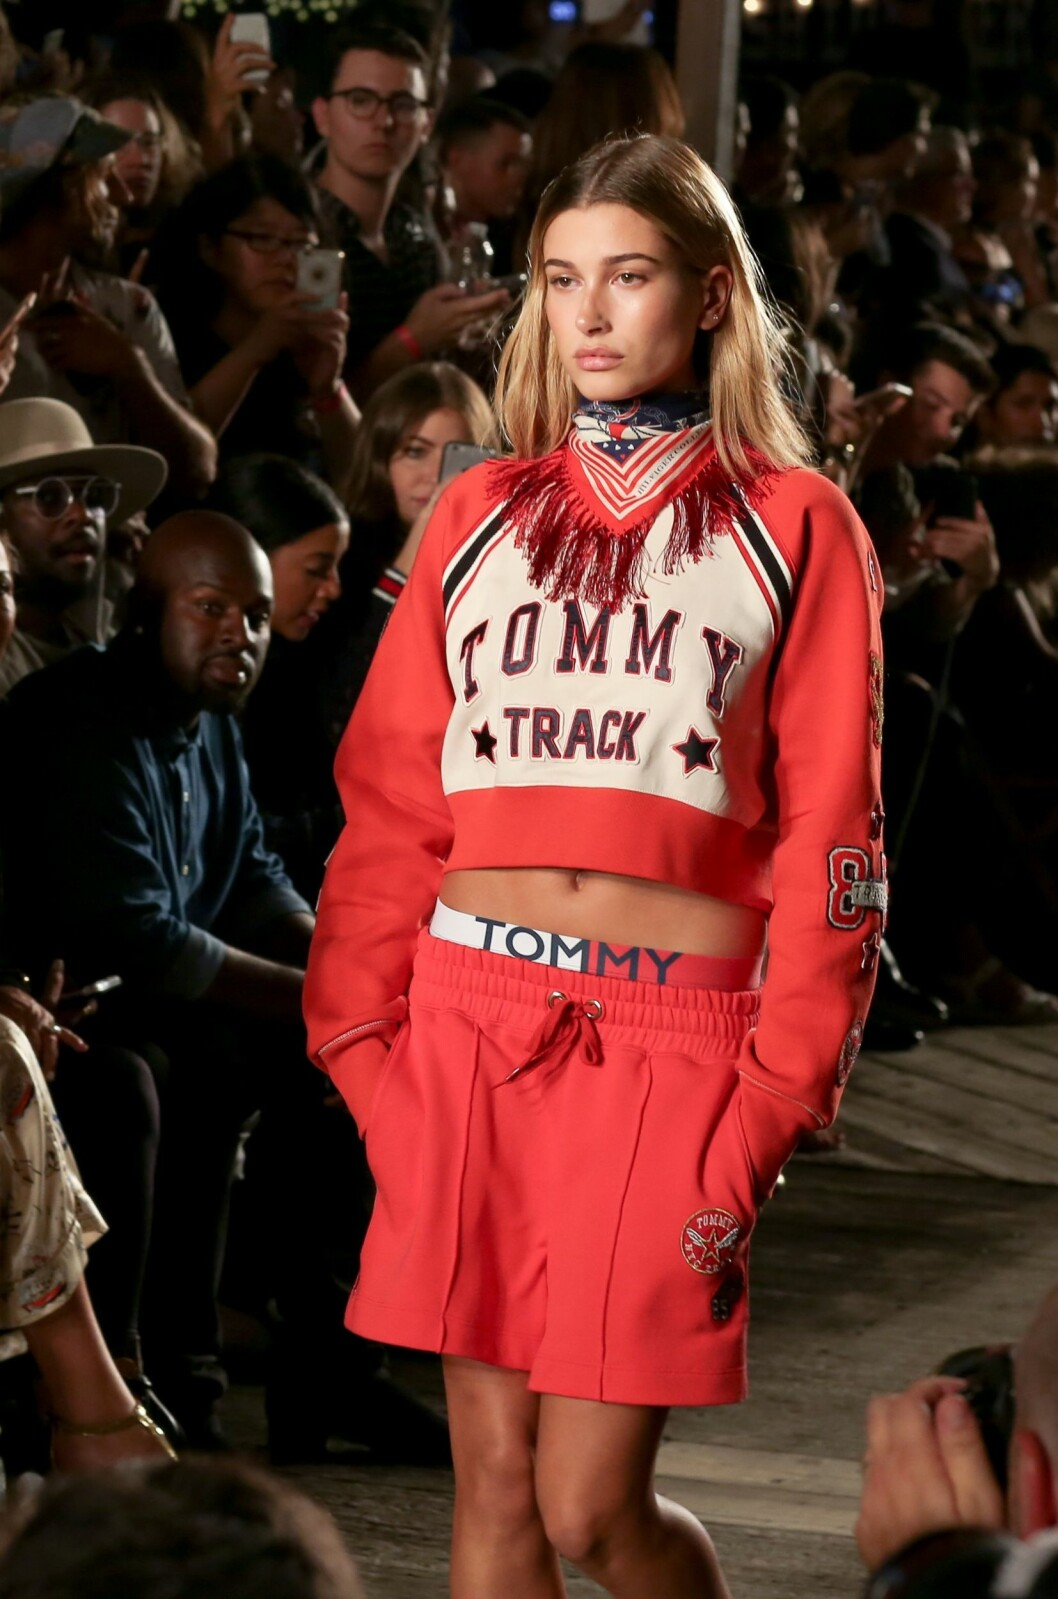 Tommy Hilfiger New York Fashion Week Foto: Rex Features